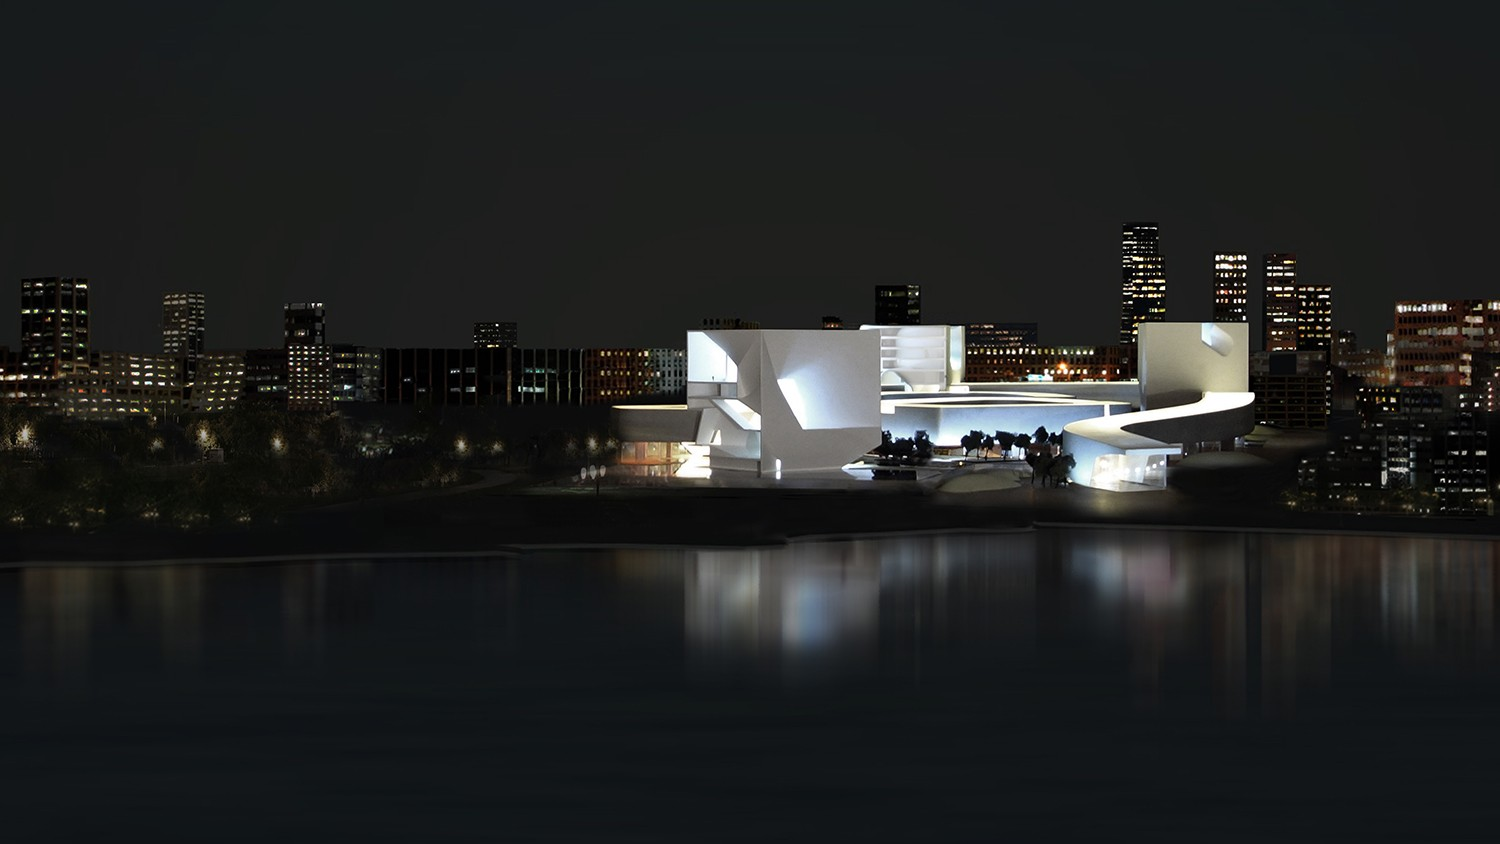 https://s3.us-east-2.amazonaws.com/steven-holl/uploads/projects/project-images/StevenHollArchitects_Qingdao_view_night_01_WH.jpg